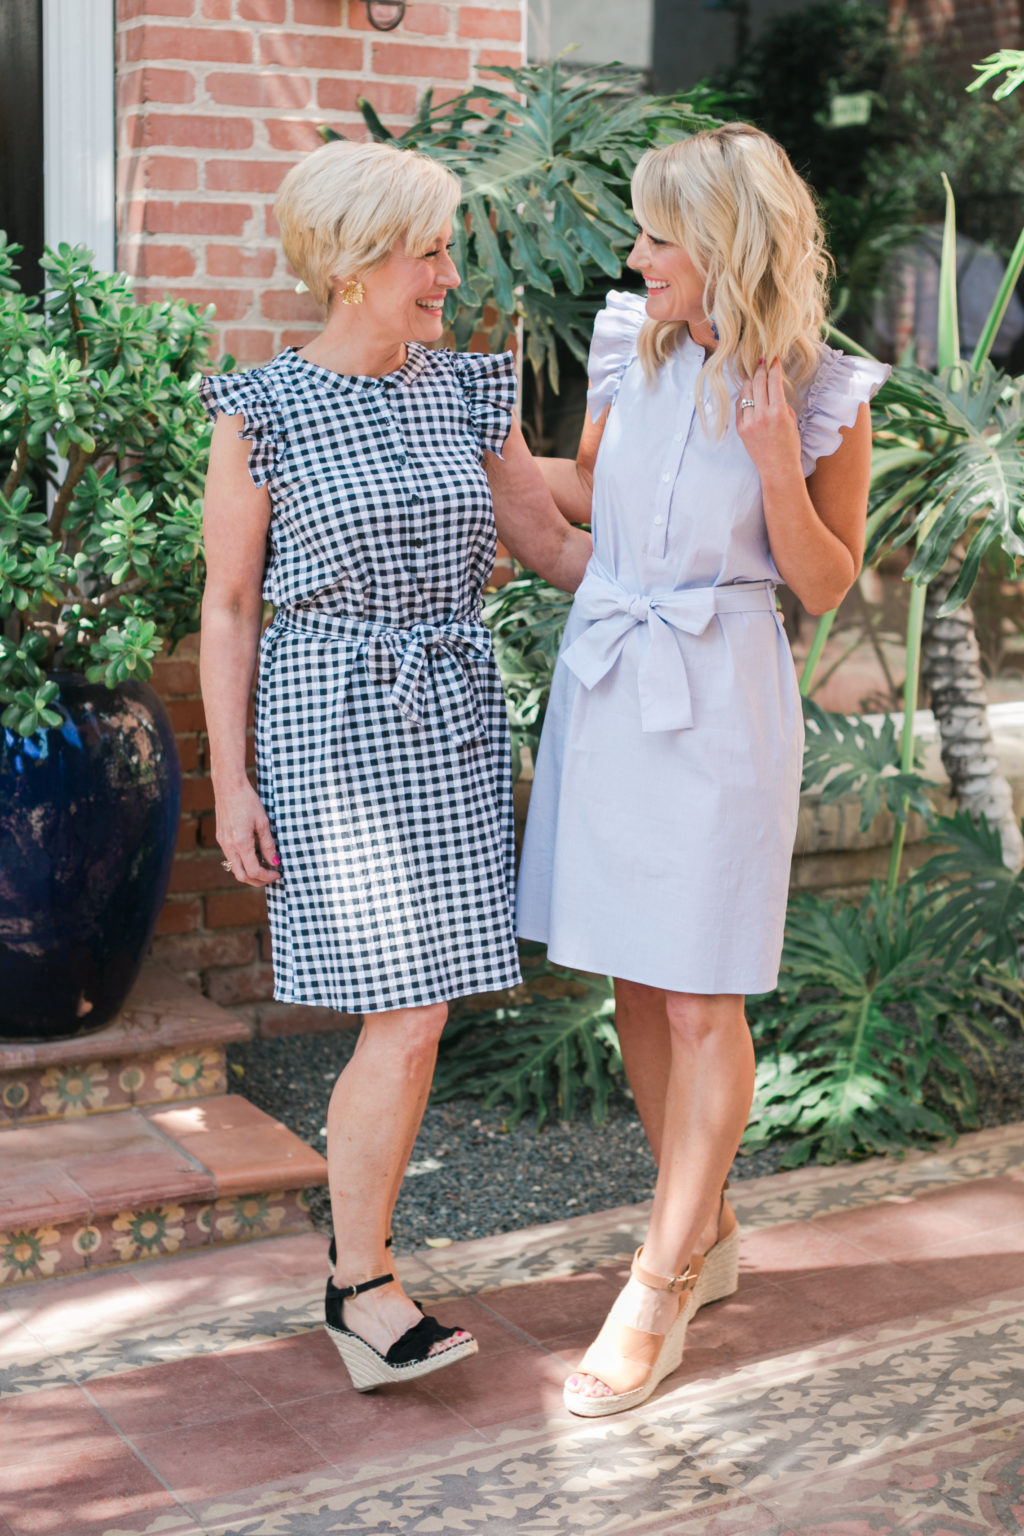 gibson hi sugarplum collection nordstrom flaminco SL ruffle siv woven dress in black gingham and white